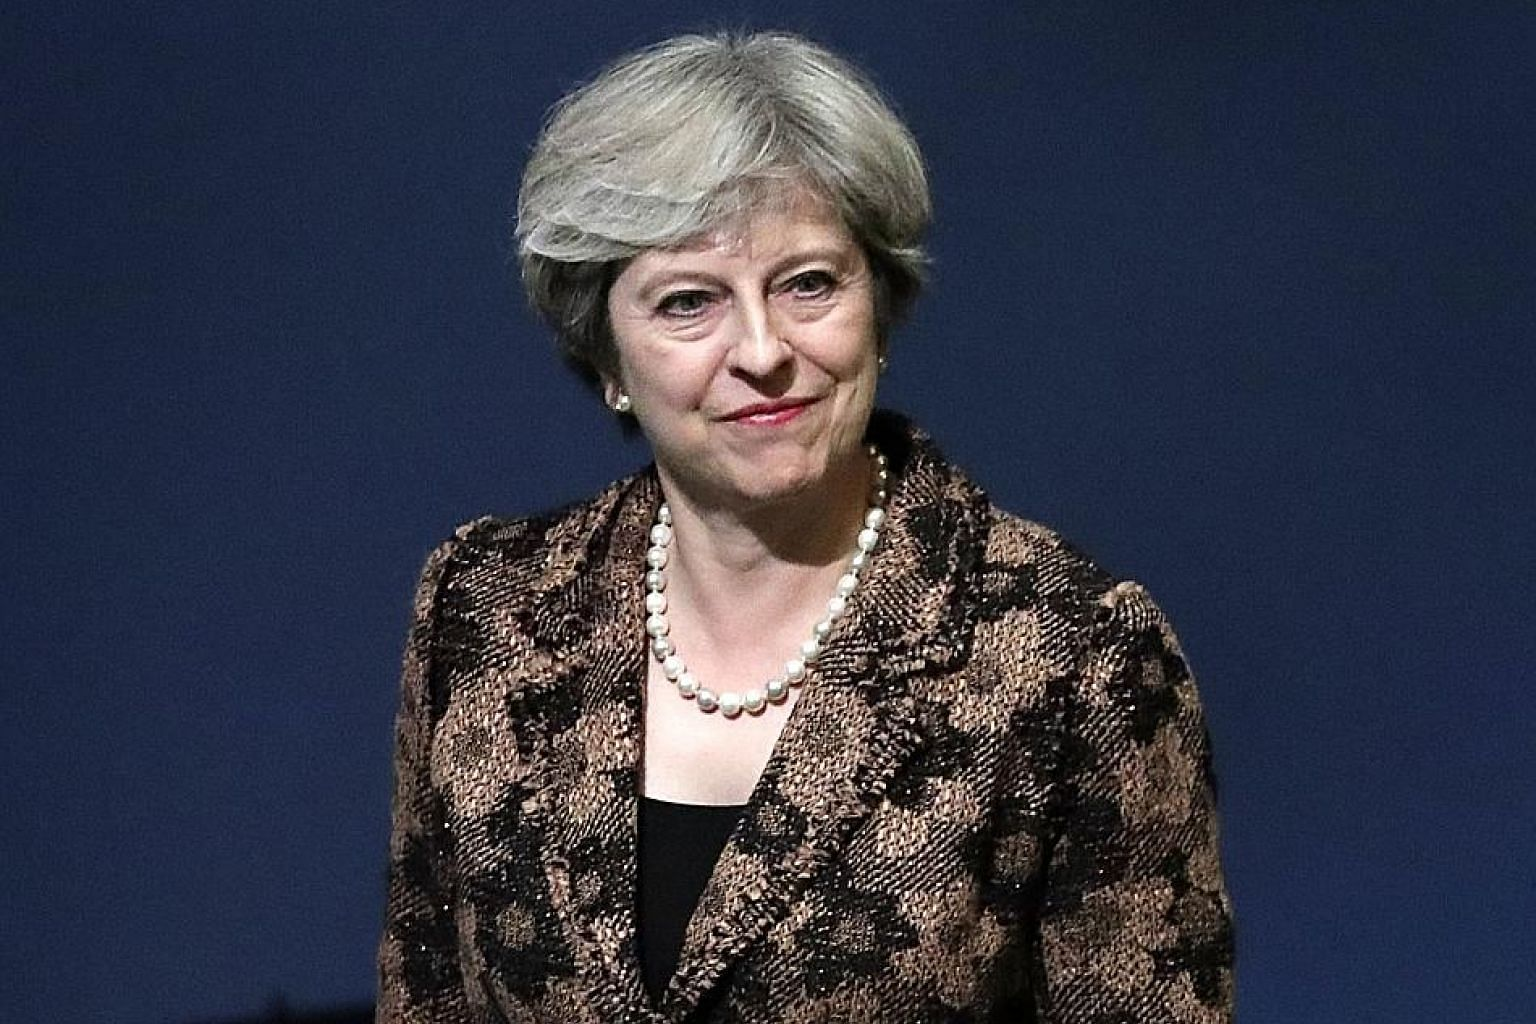 Mrs Theresa May will deliver a speech in Florence today that is expected to define Britain's place in the world after it leaves the European Union.